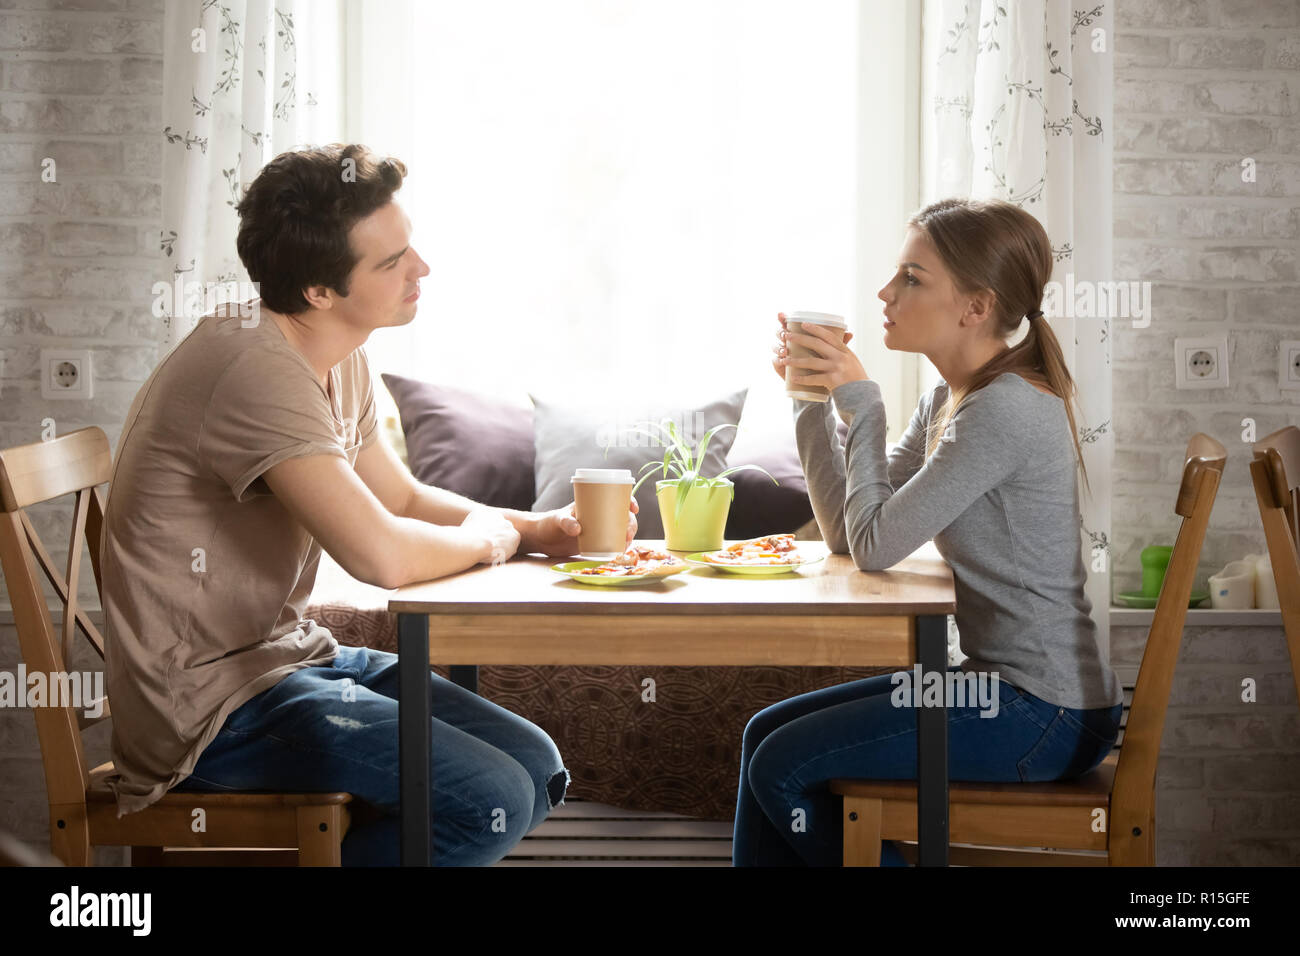 Serious attractive girlfriend spends time in cafe with boyfriend sitting together at table chatting discussing, side view. Millennial guy looking at g - Stock Image